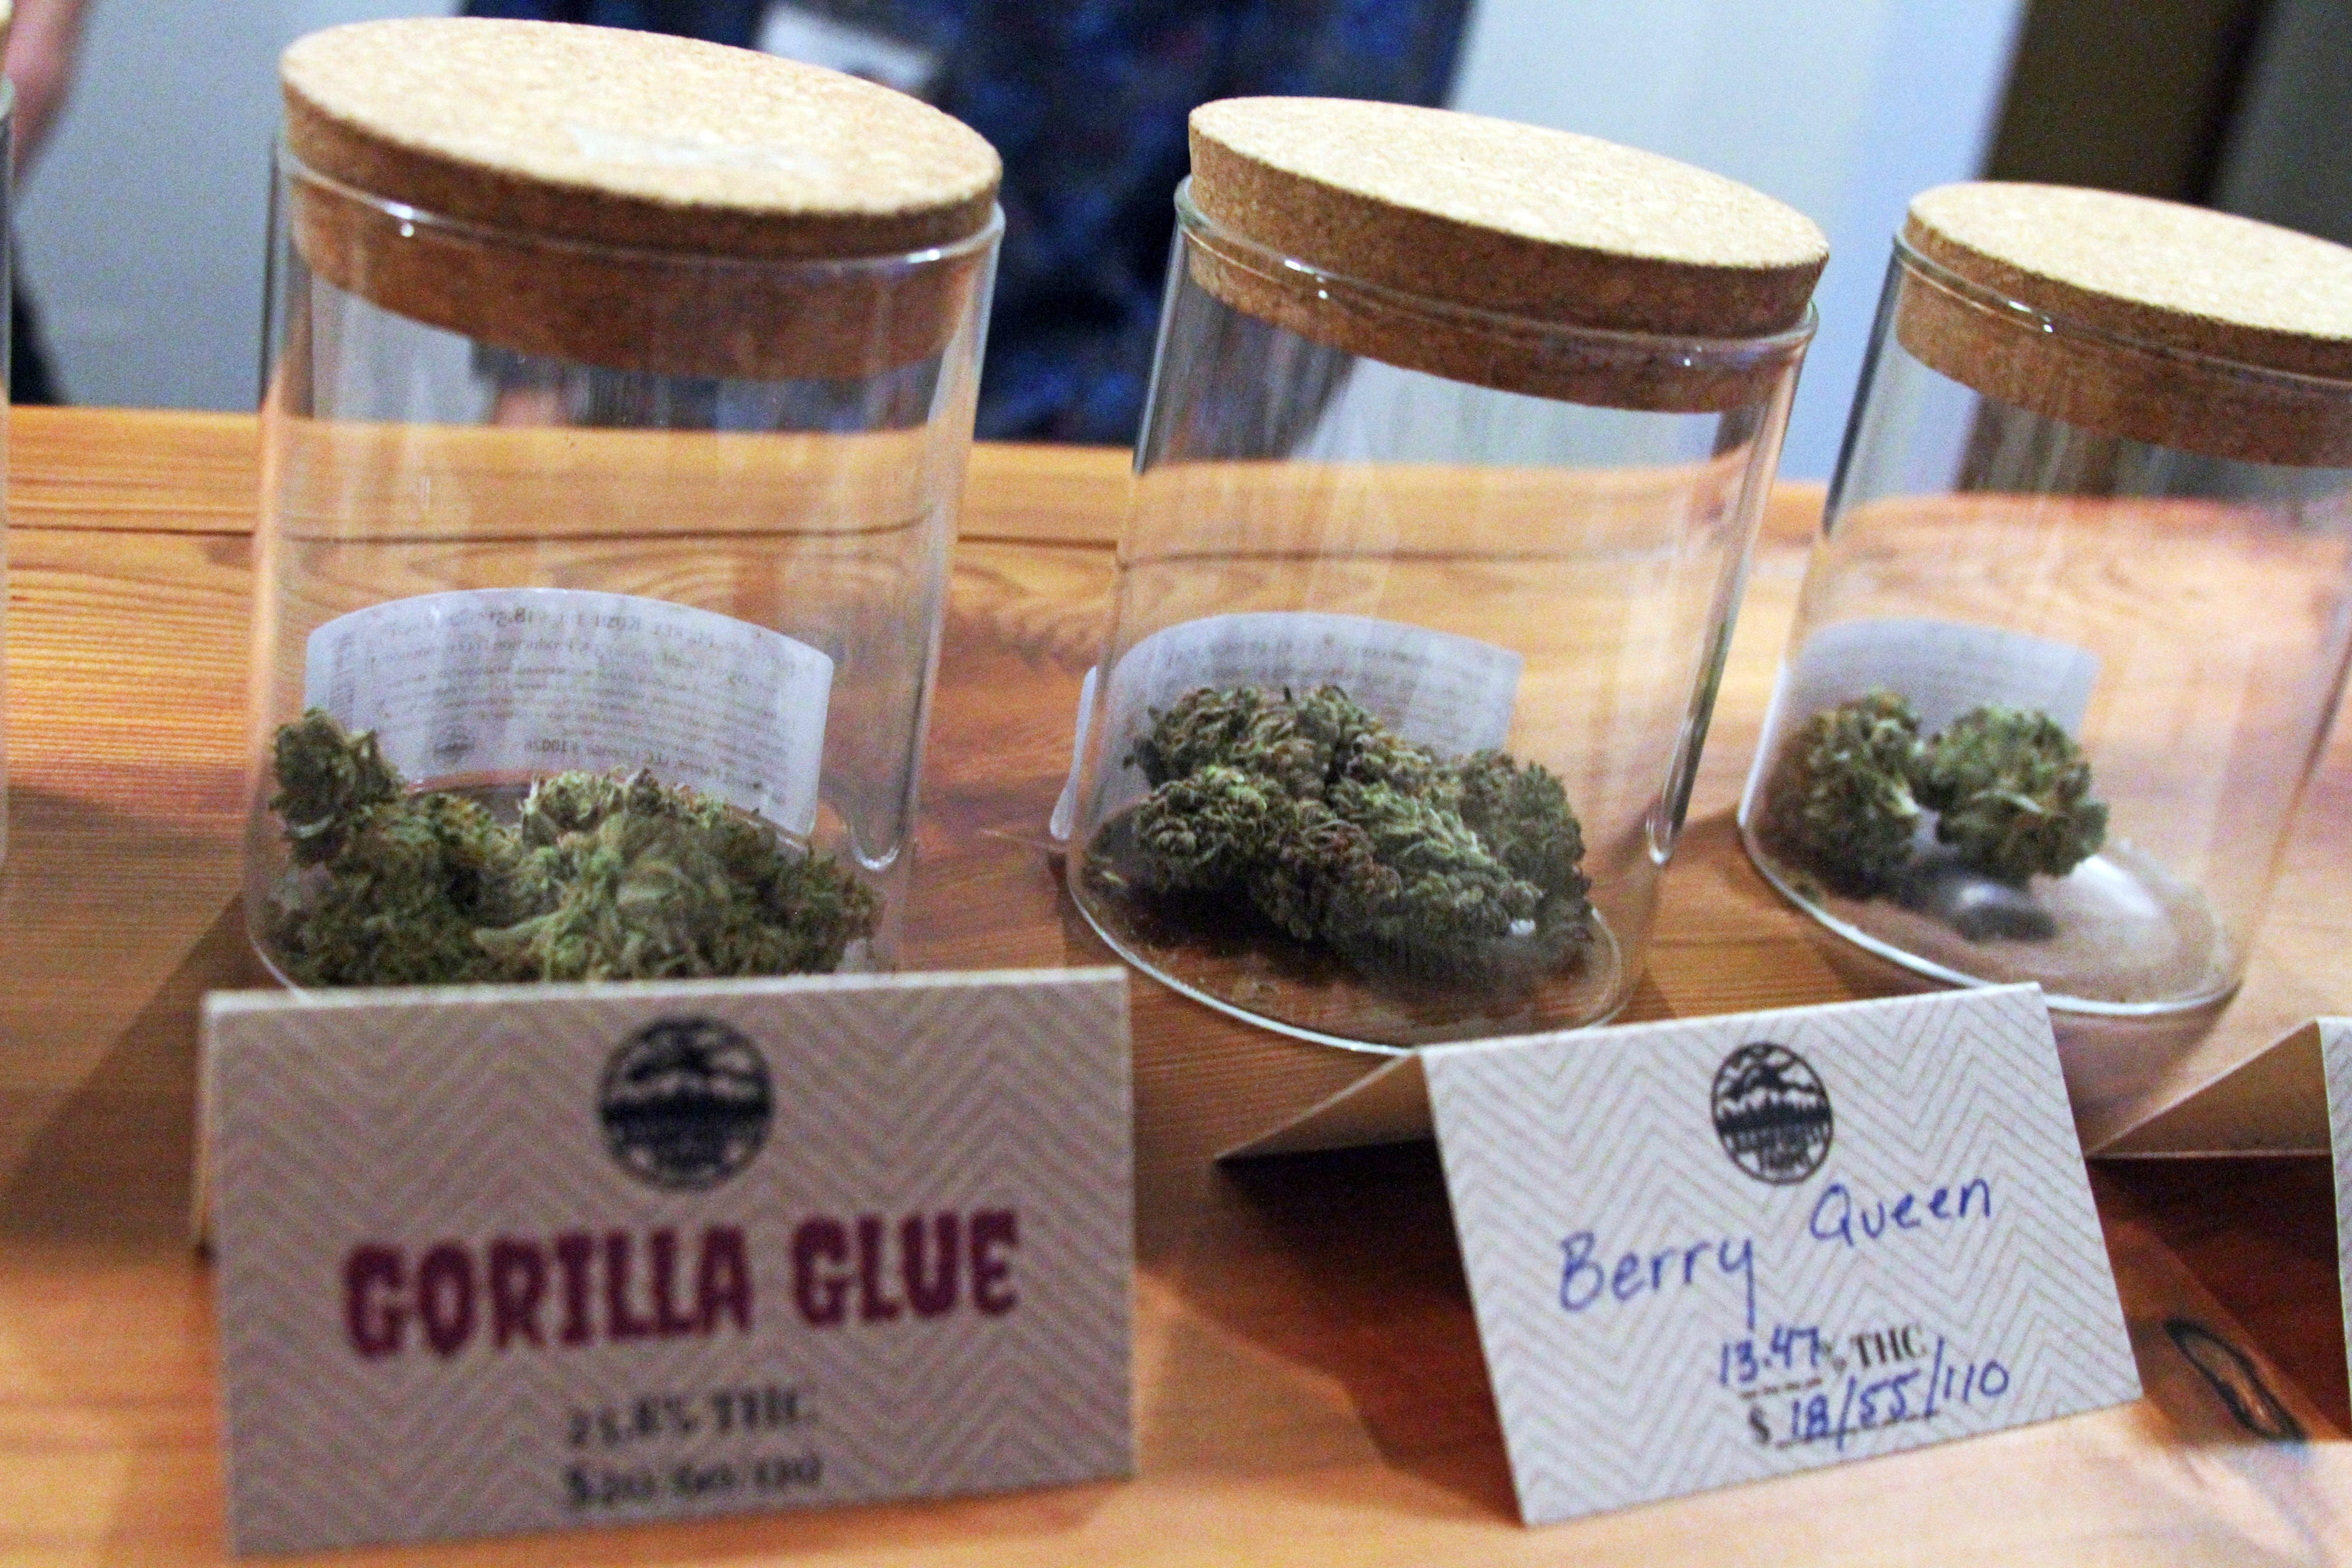 Alaska poised to become first state to allow on-site cannabis consumption